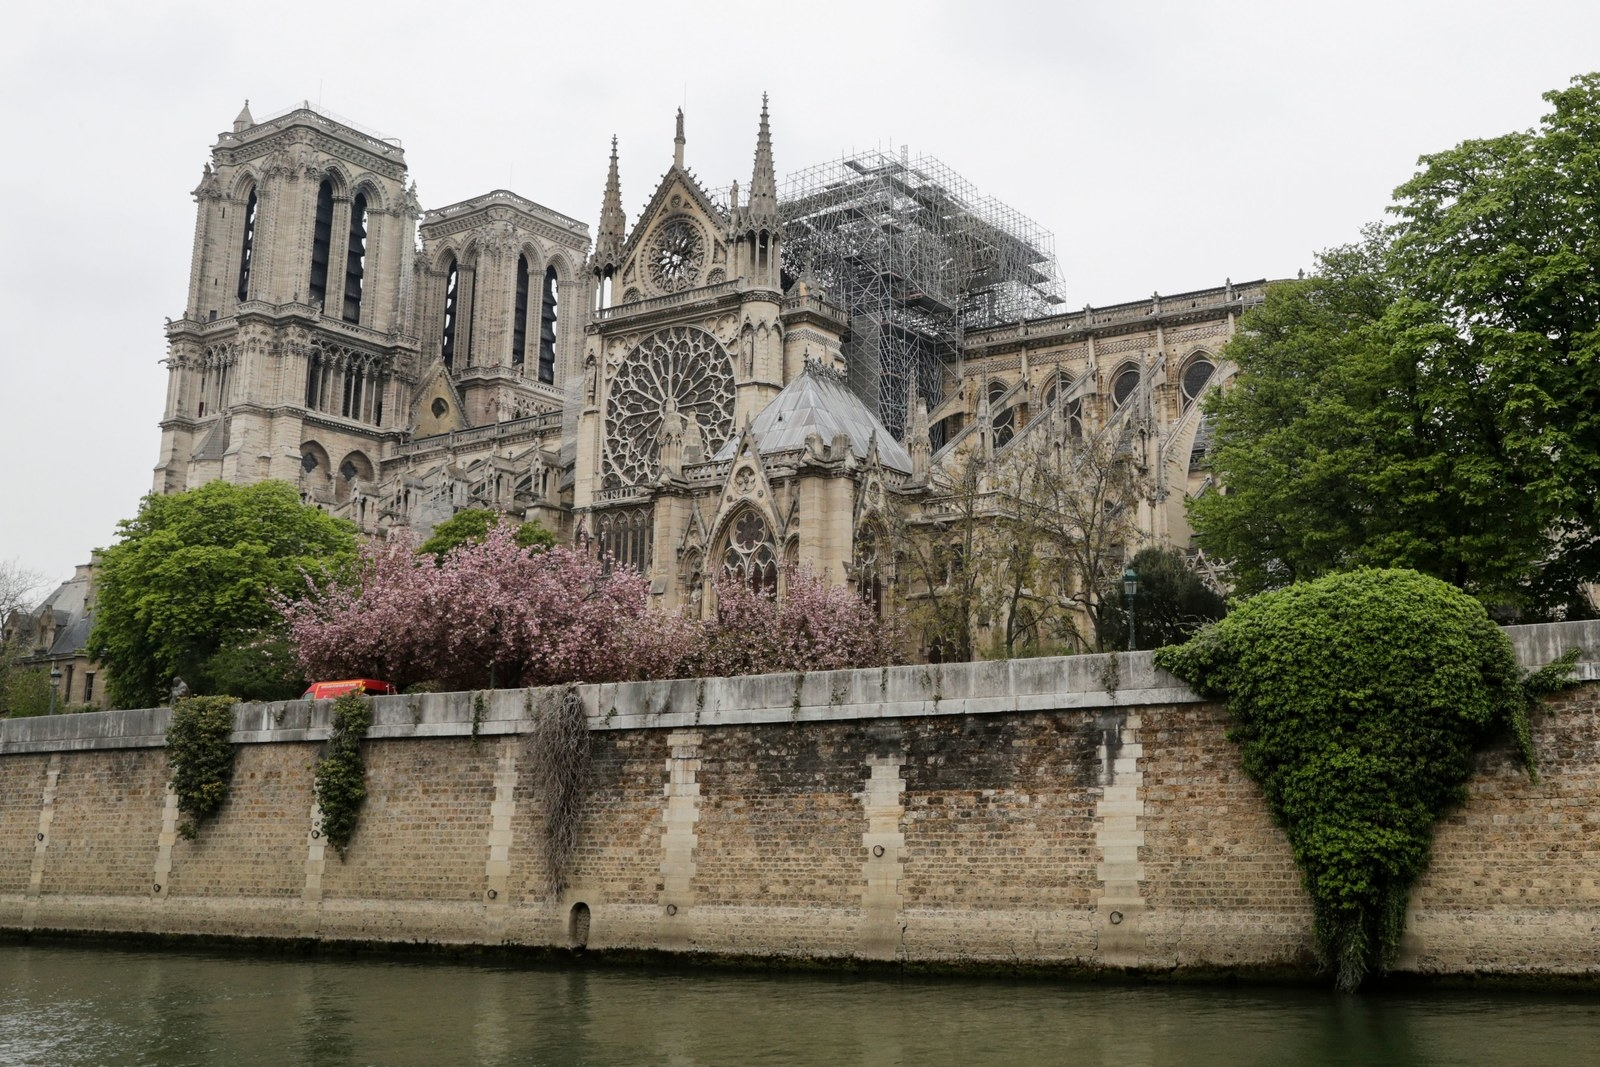 A Timeline Of How The Notre Dame Fire Was Turned Into An Anti-Muslim Narrative